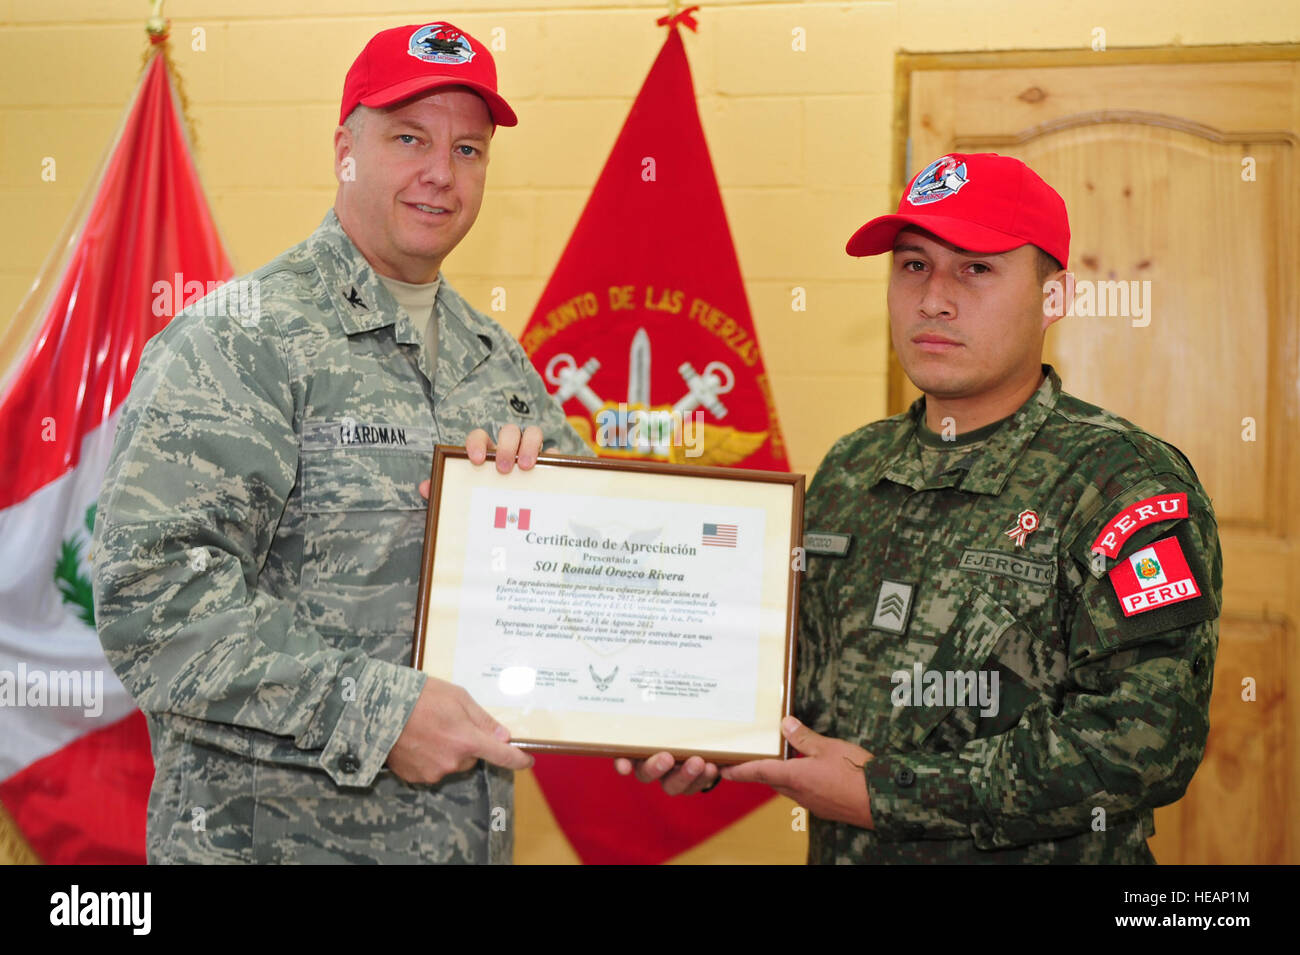 U.S. Air Force Col. Douglas Hardman presents a Red  Horse hat and Certificate to a Peruvian soldiers who contributed - Stock Image